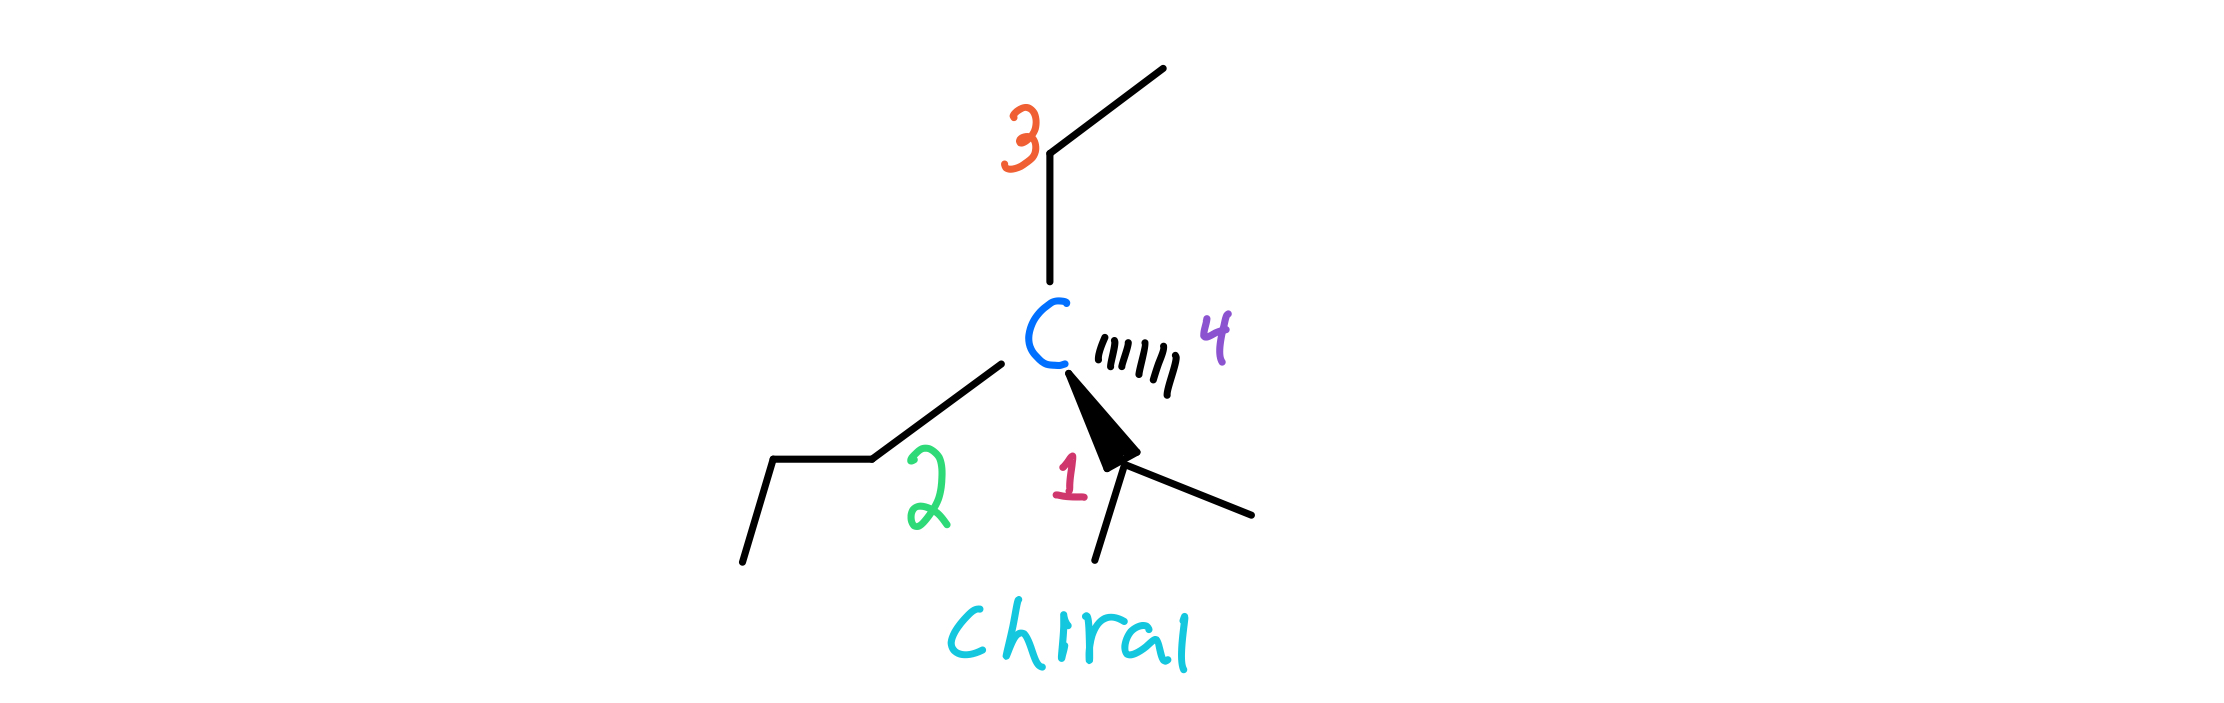 Chiral-molecule-with-only-alkyl-groups